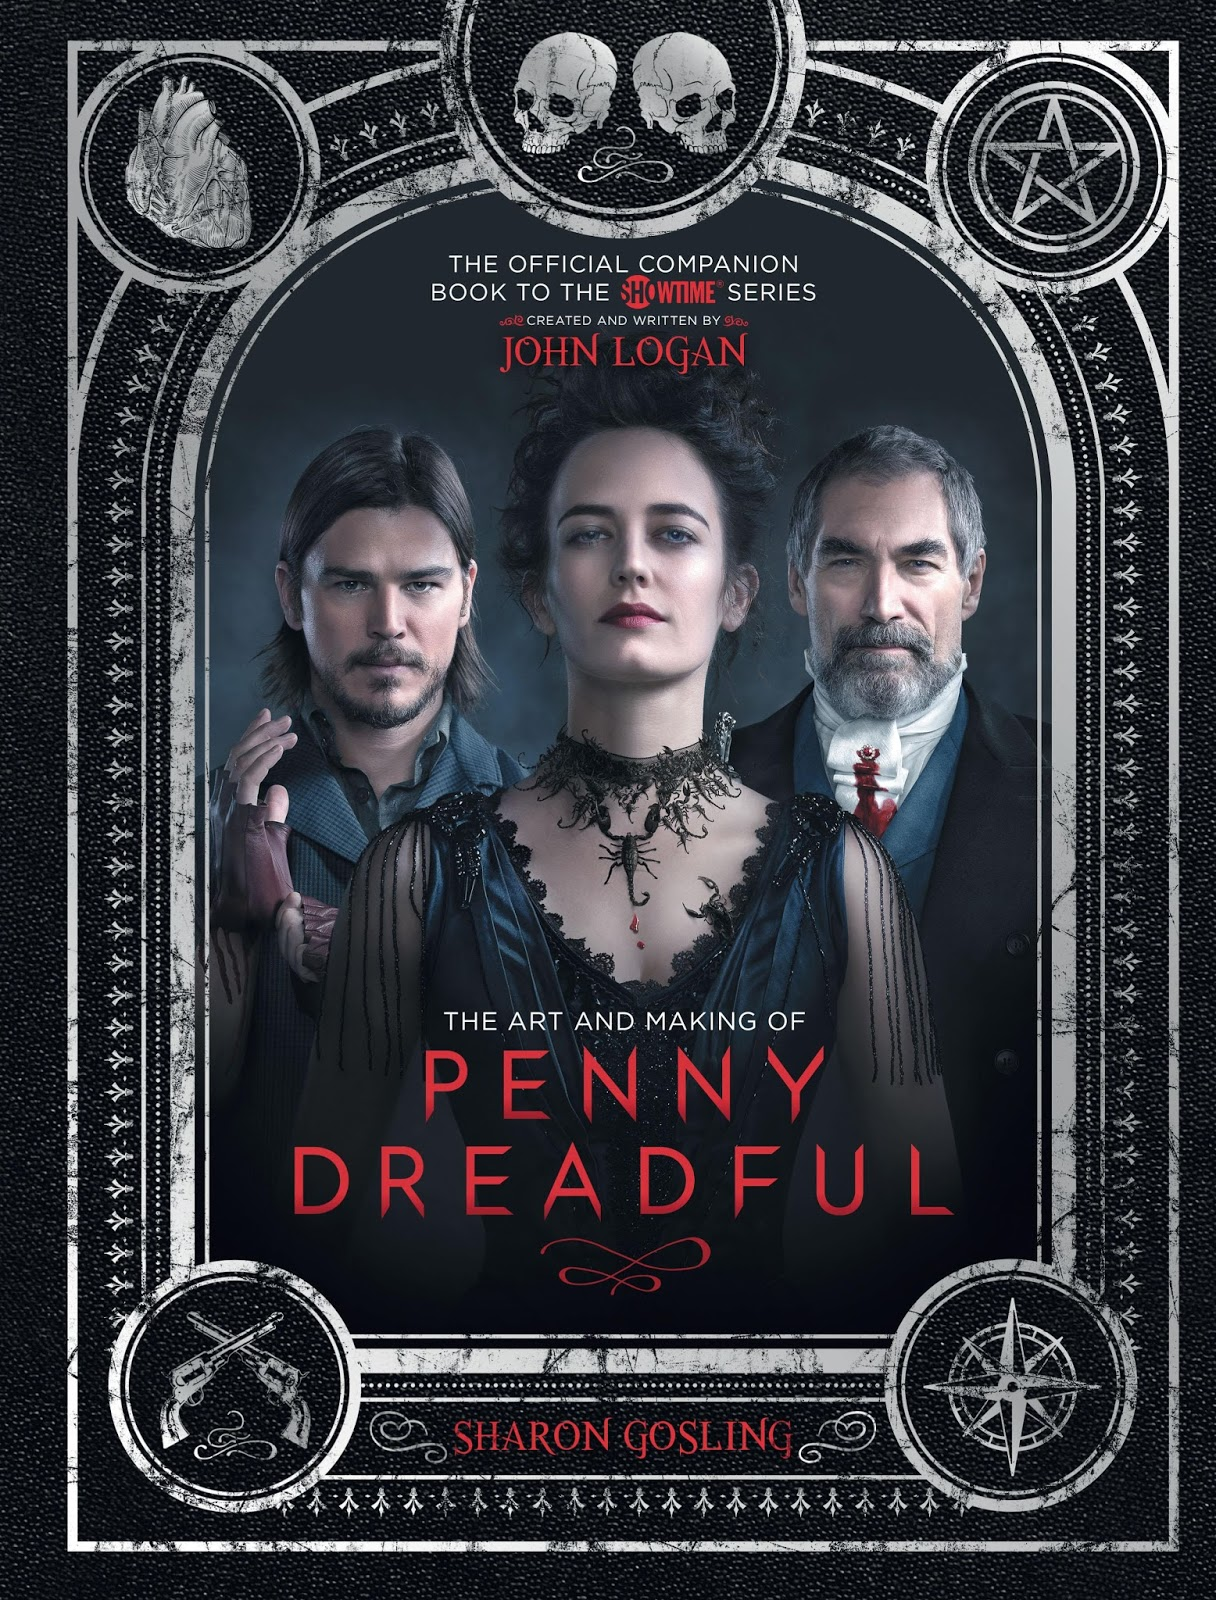 Penny Dreadful book cover